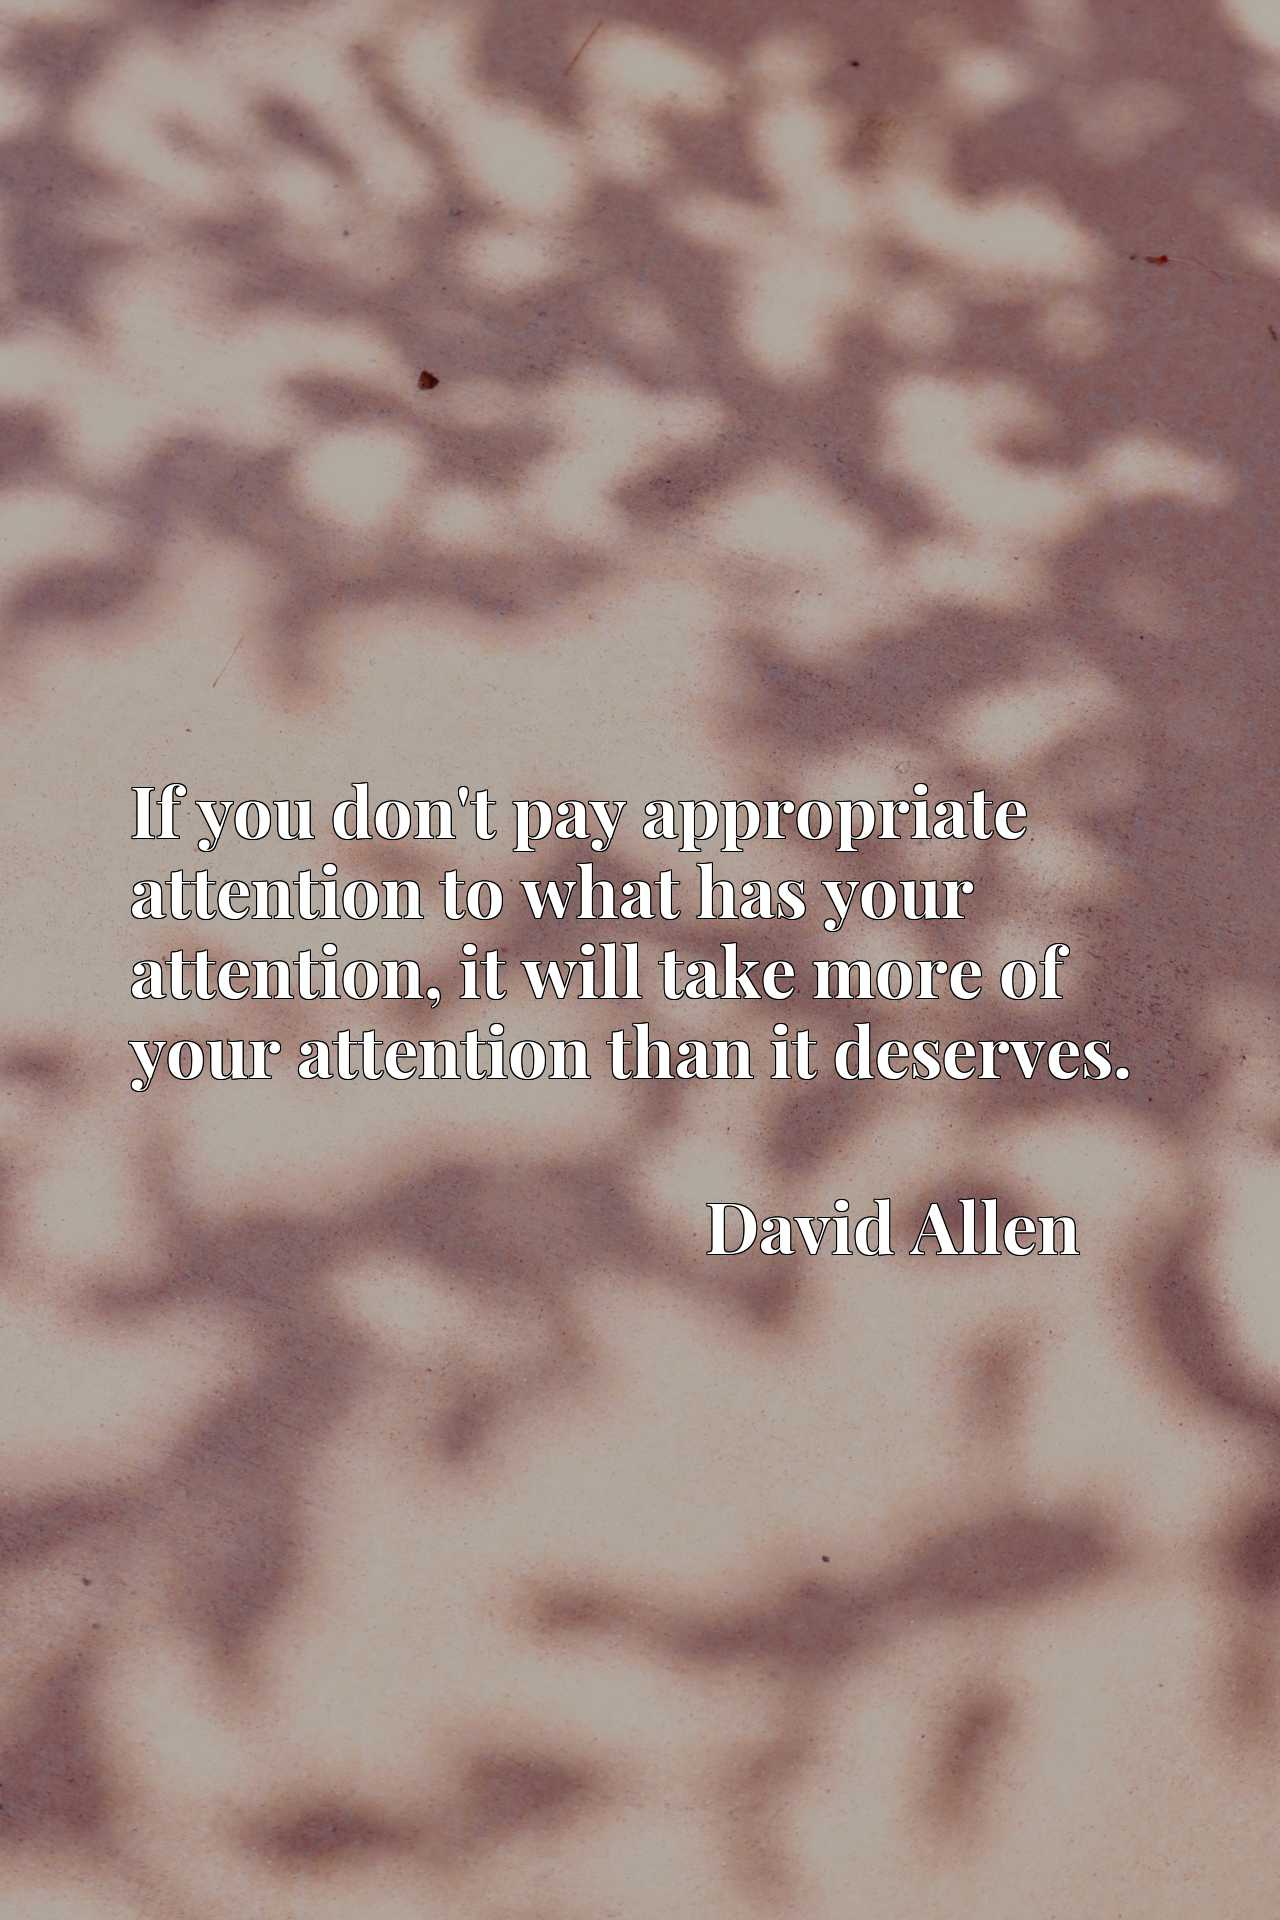 If you don't pay appropriate attention to what has your attention, it will take more of your attention than it deserves.